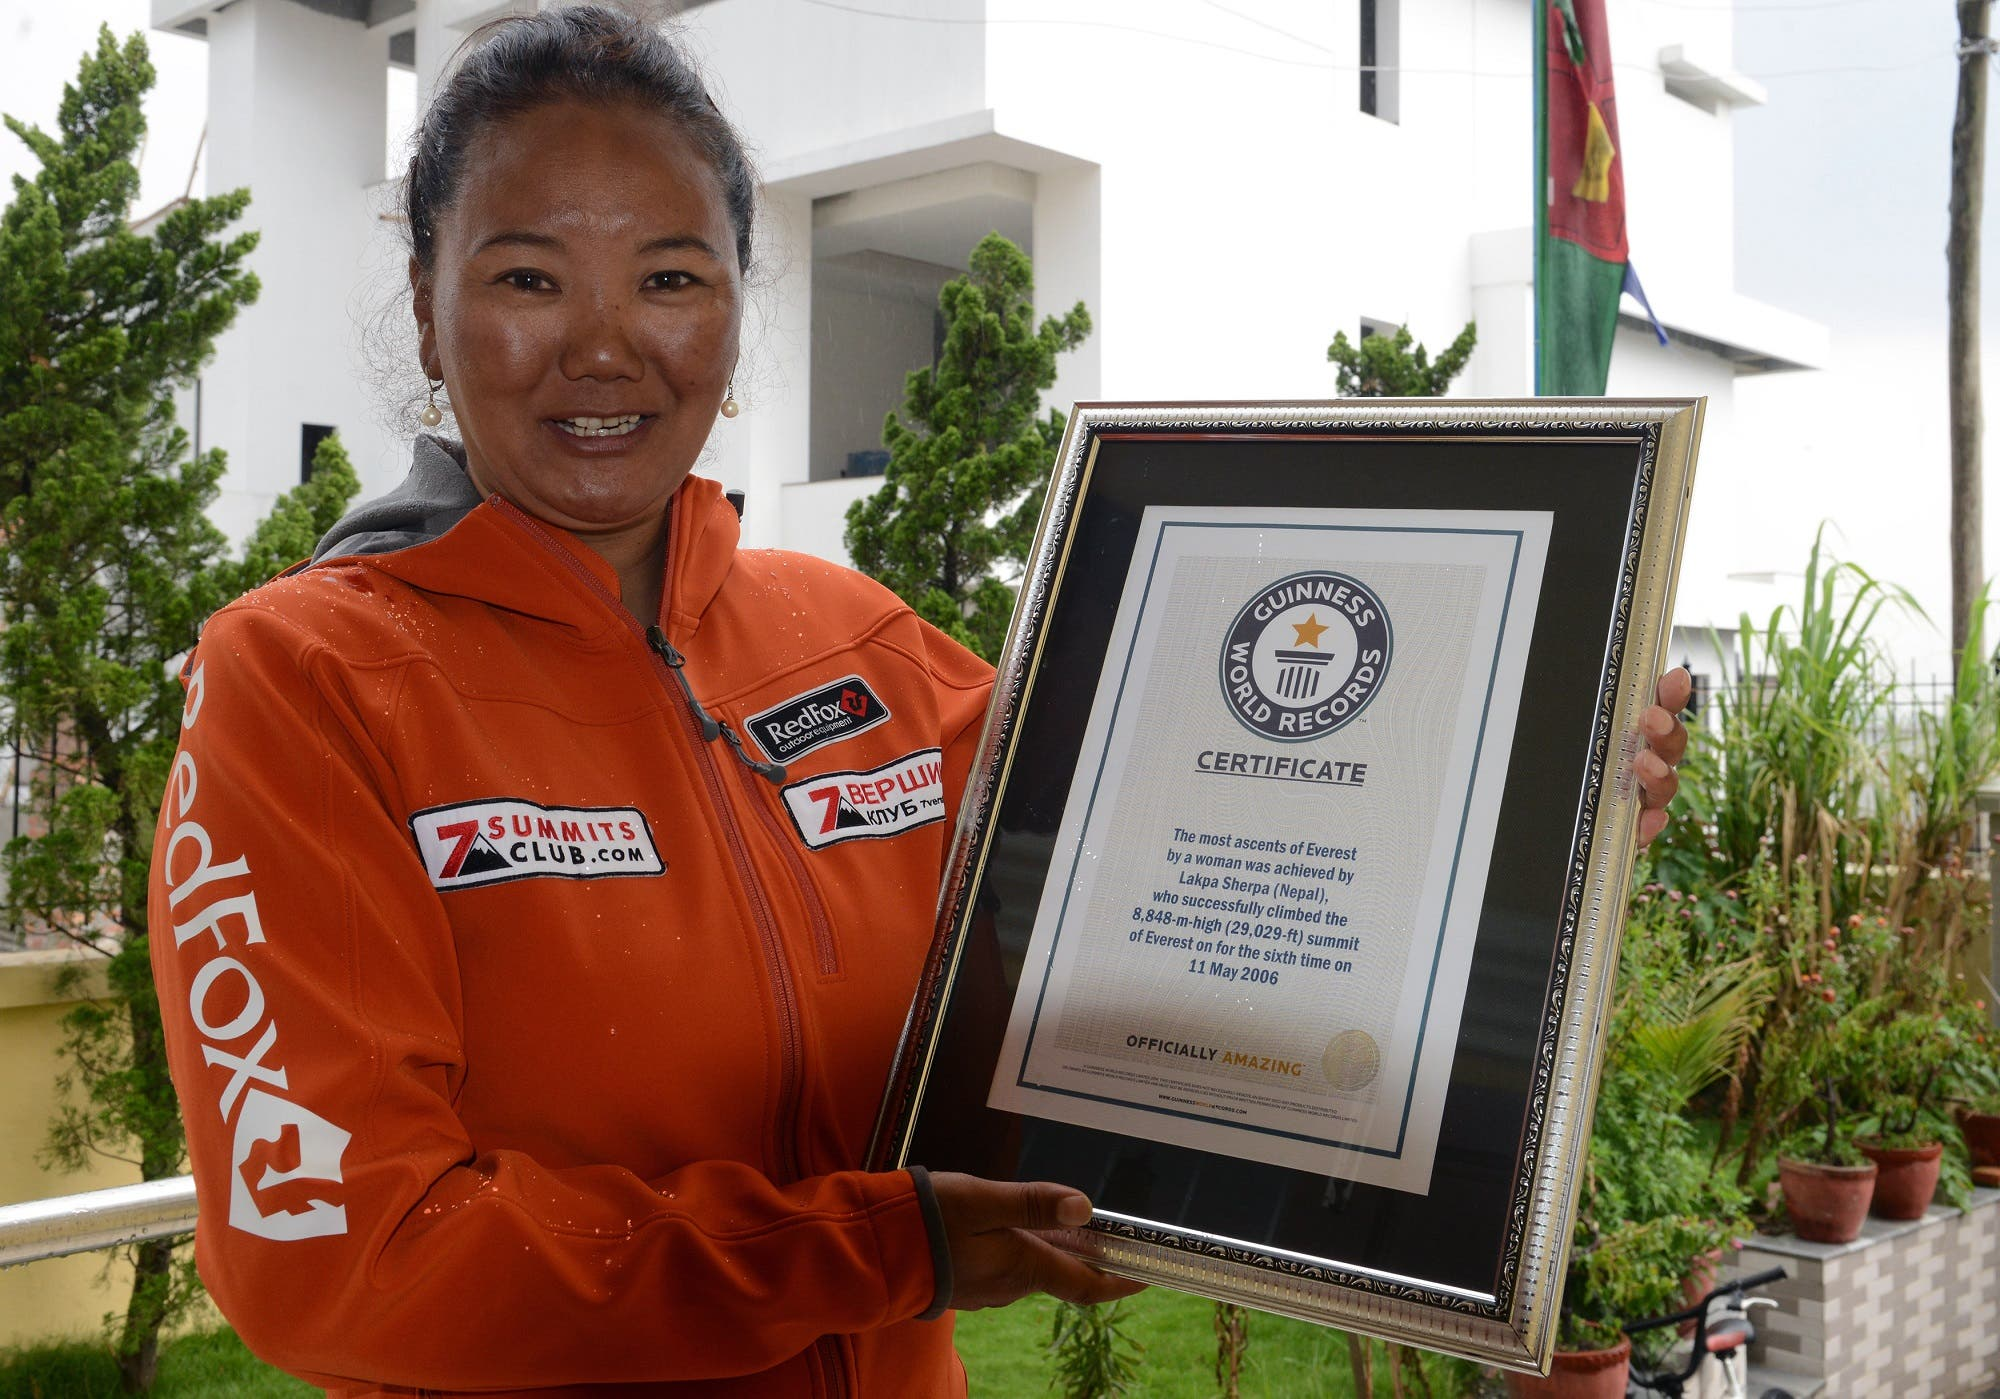 Lhakpa Sherpa poses with her Guinness record certificate in Kathmandu on May 27, 2016. (AFP)